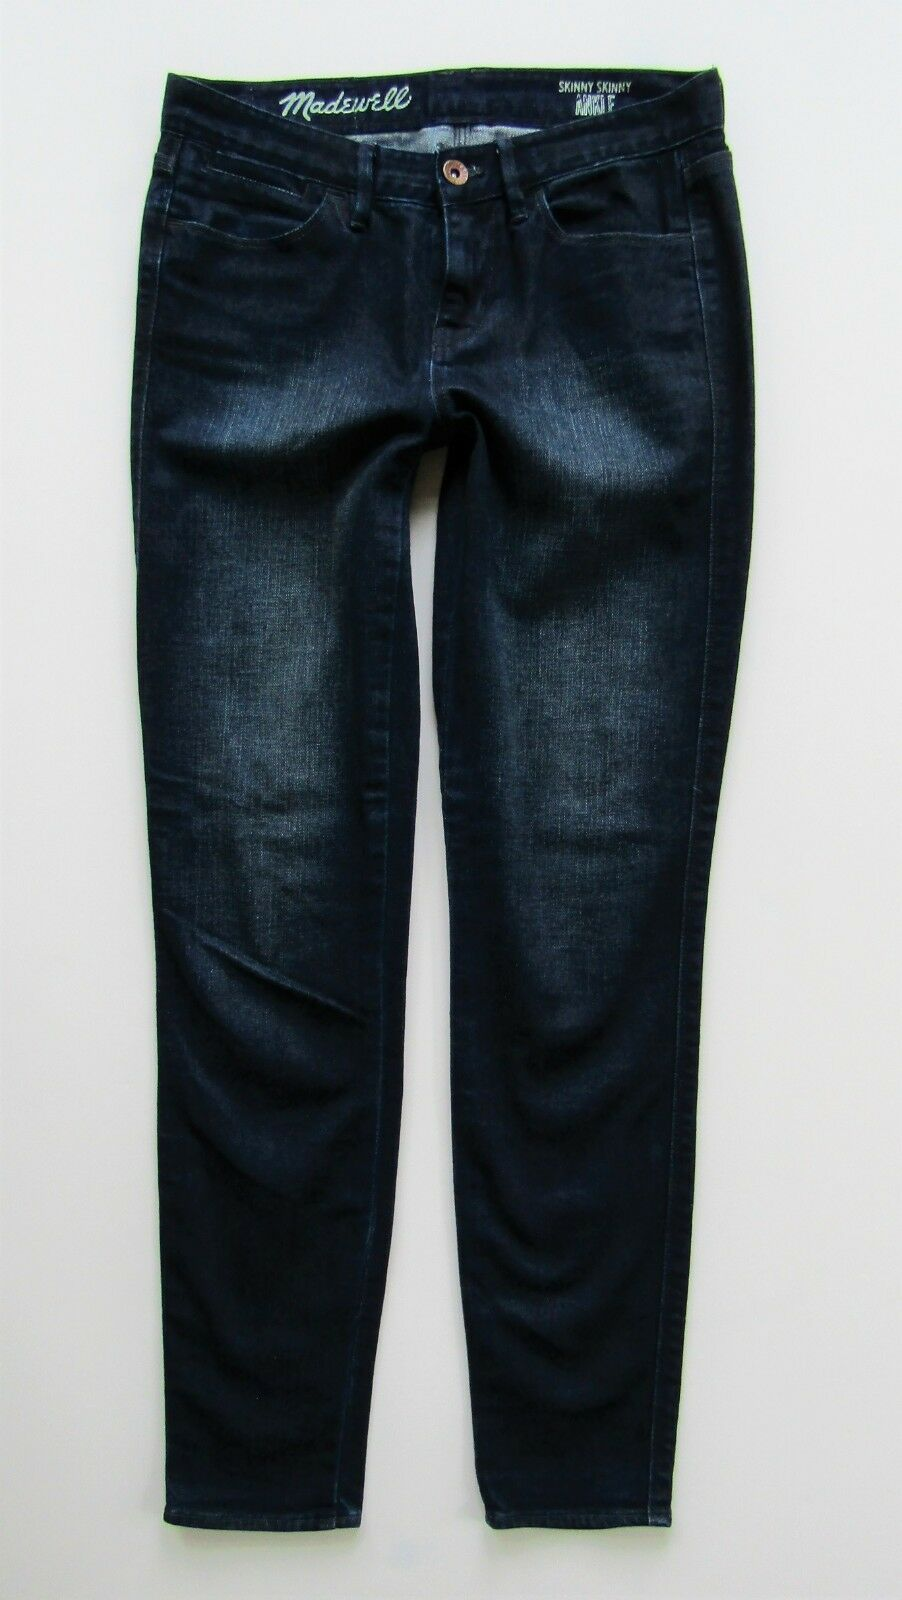 Madewell Mid Rise Skinny Ankle Jean, Dark Wash - Size 24